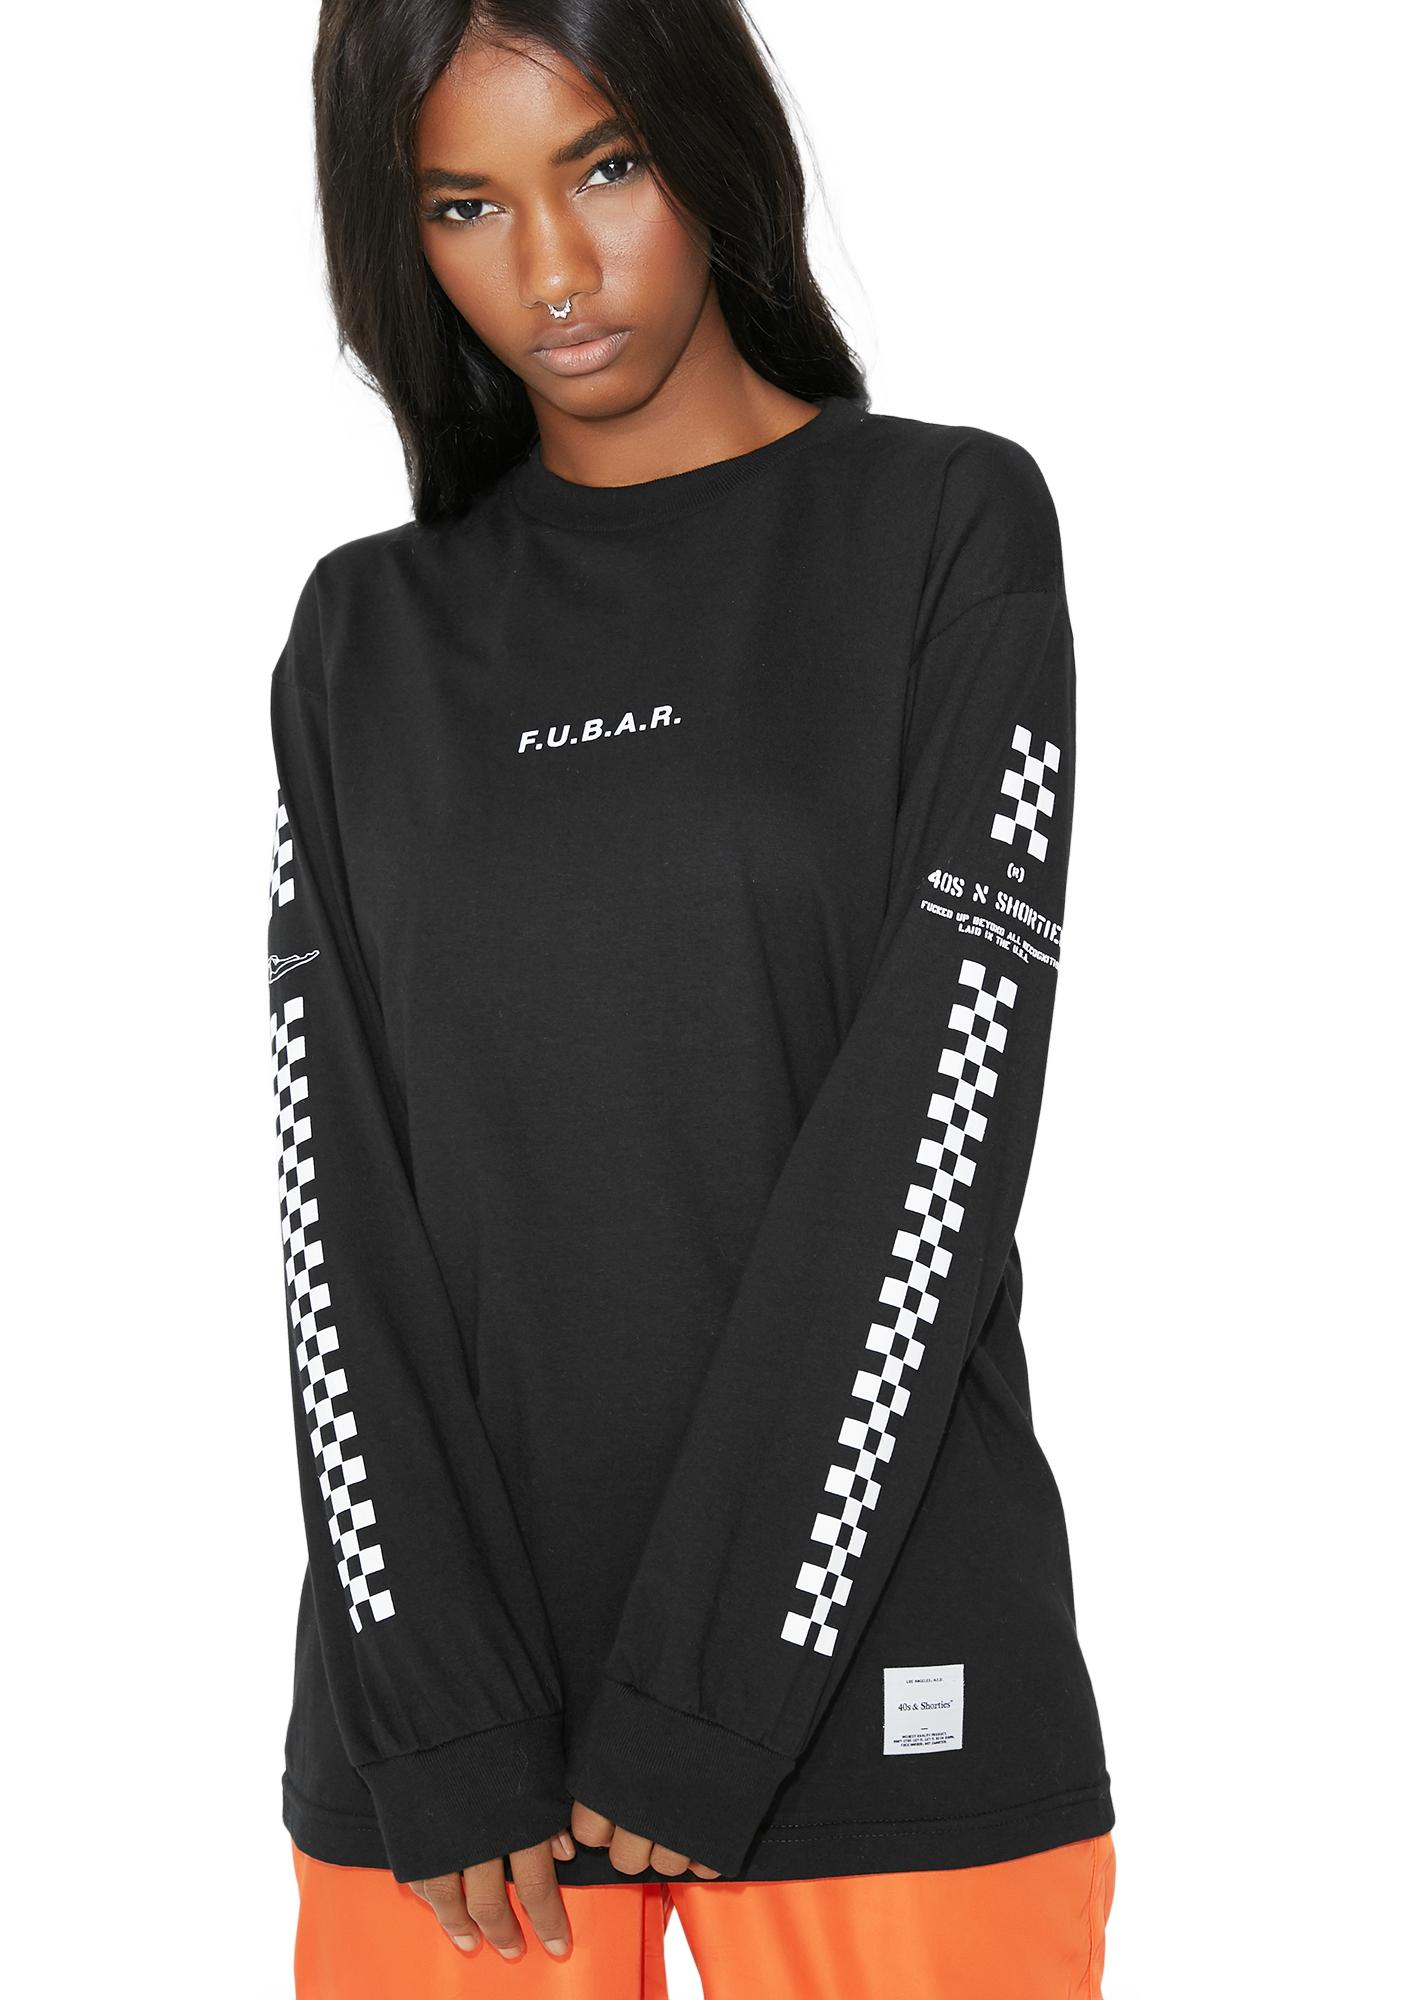 40s & Shorties F.U.B.A.R. Long Sleeve Tee